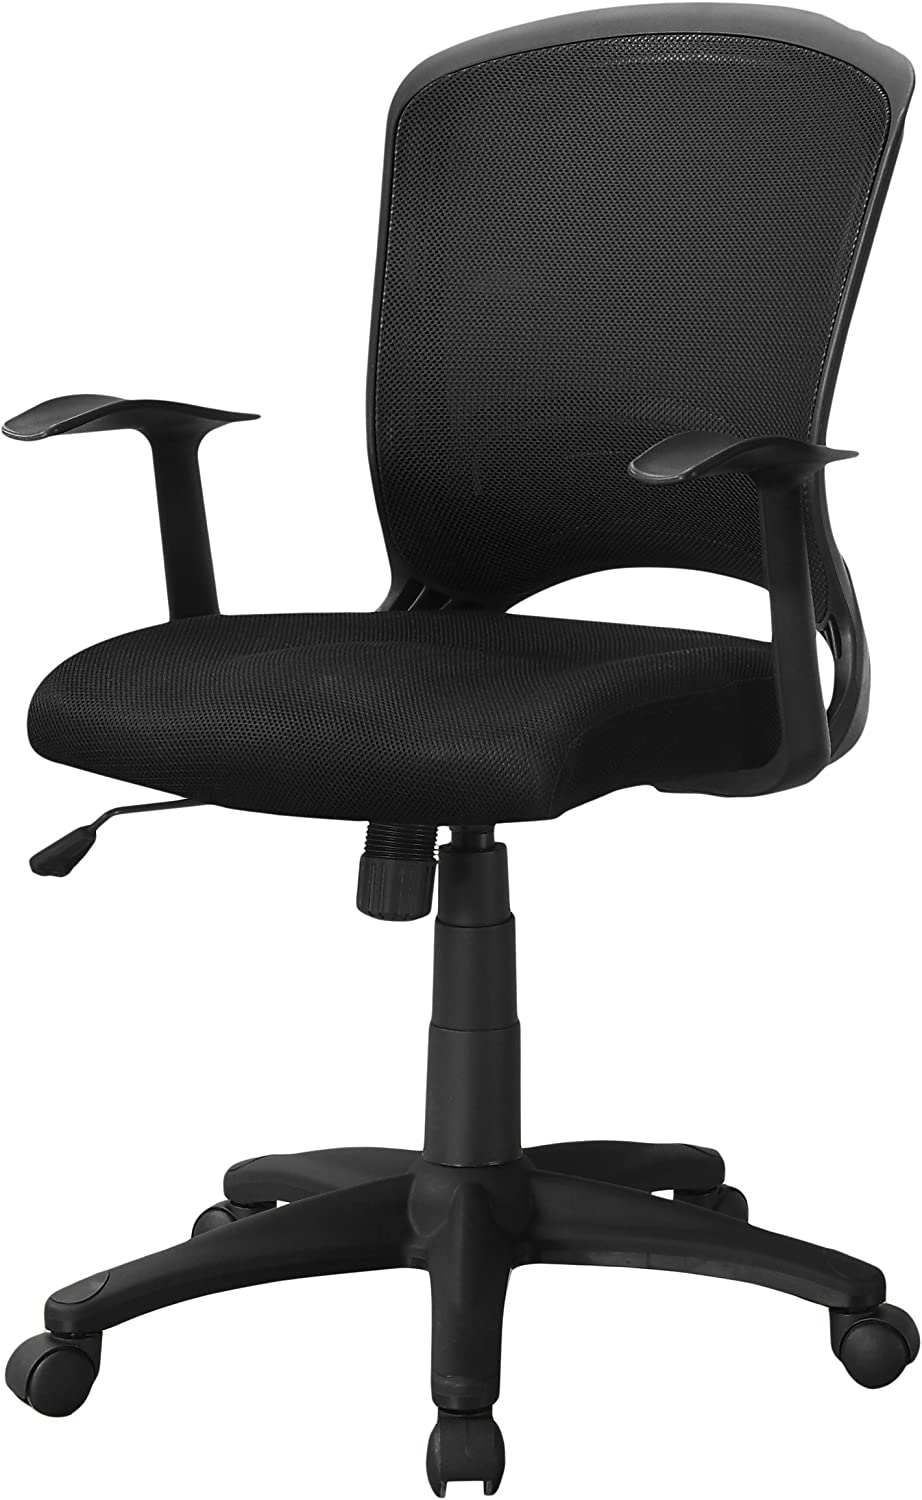 Monarch Specialties Mesh Mid-Back/Multi-Position Office Chair, Black